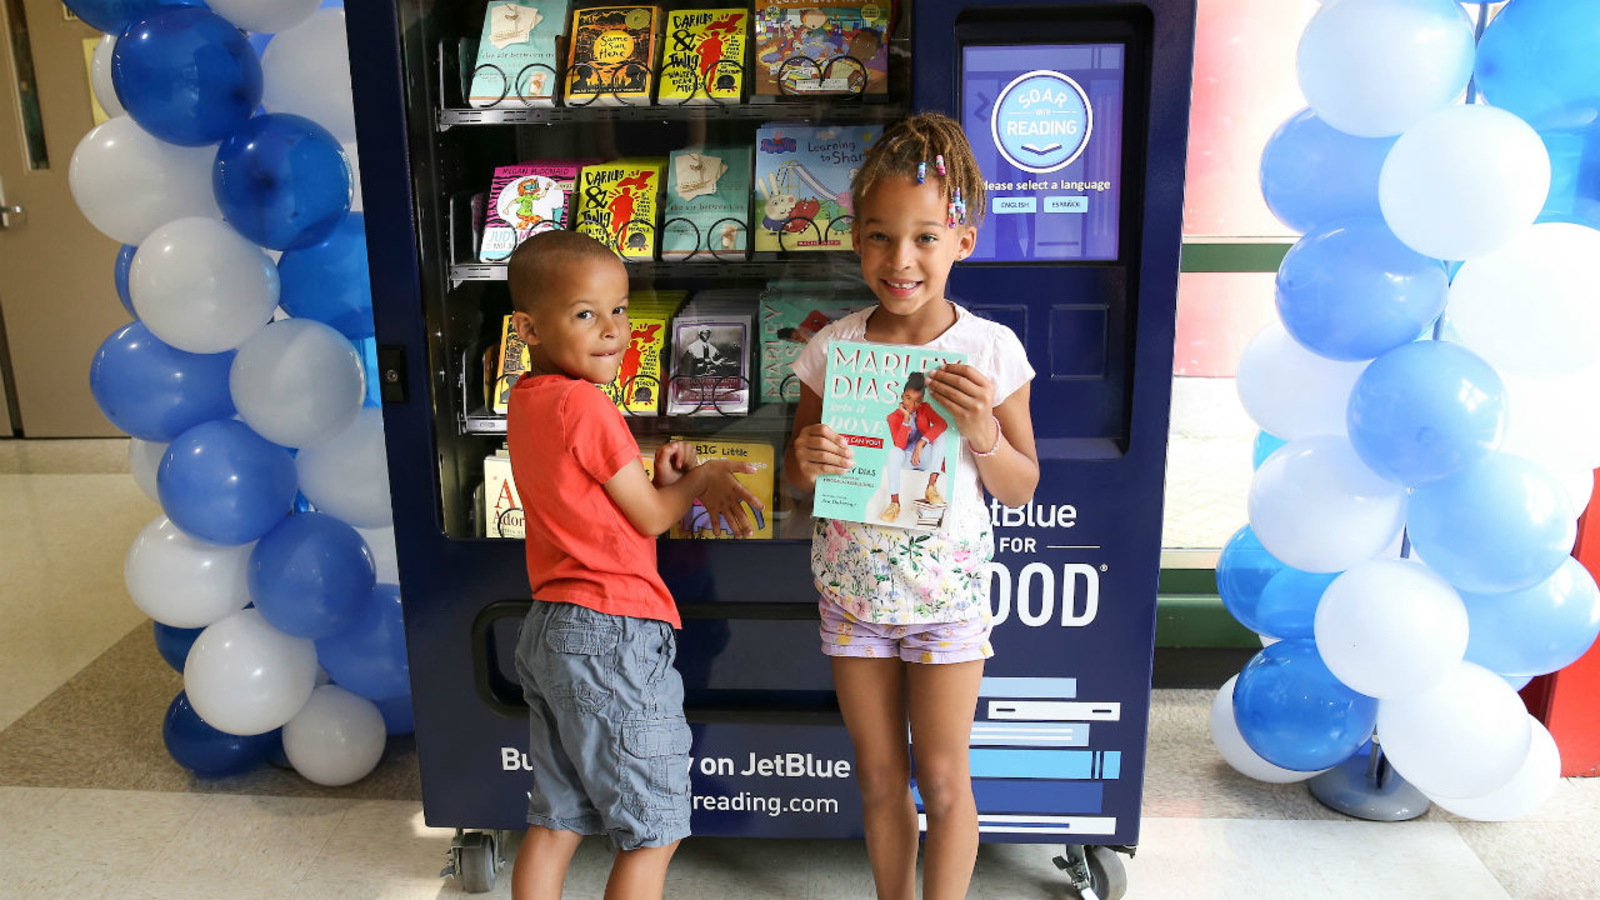 Vending machines with free books coming to serve New York City